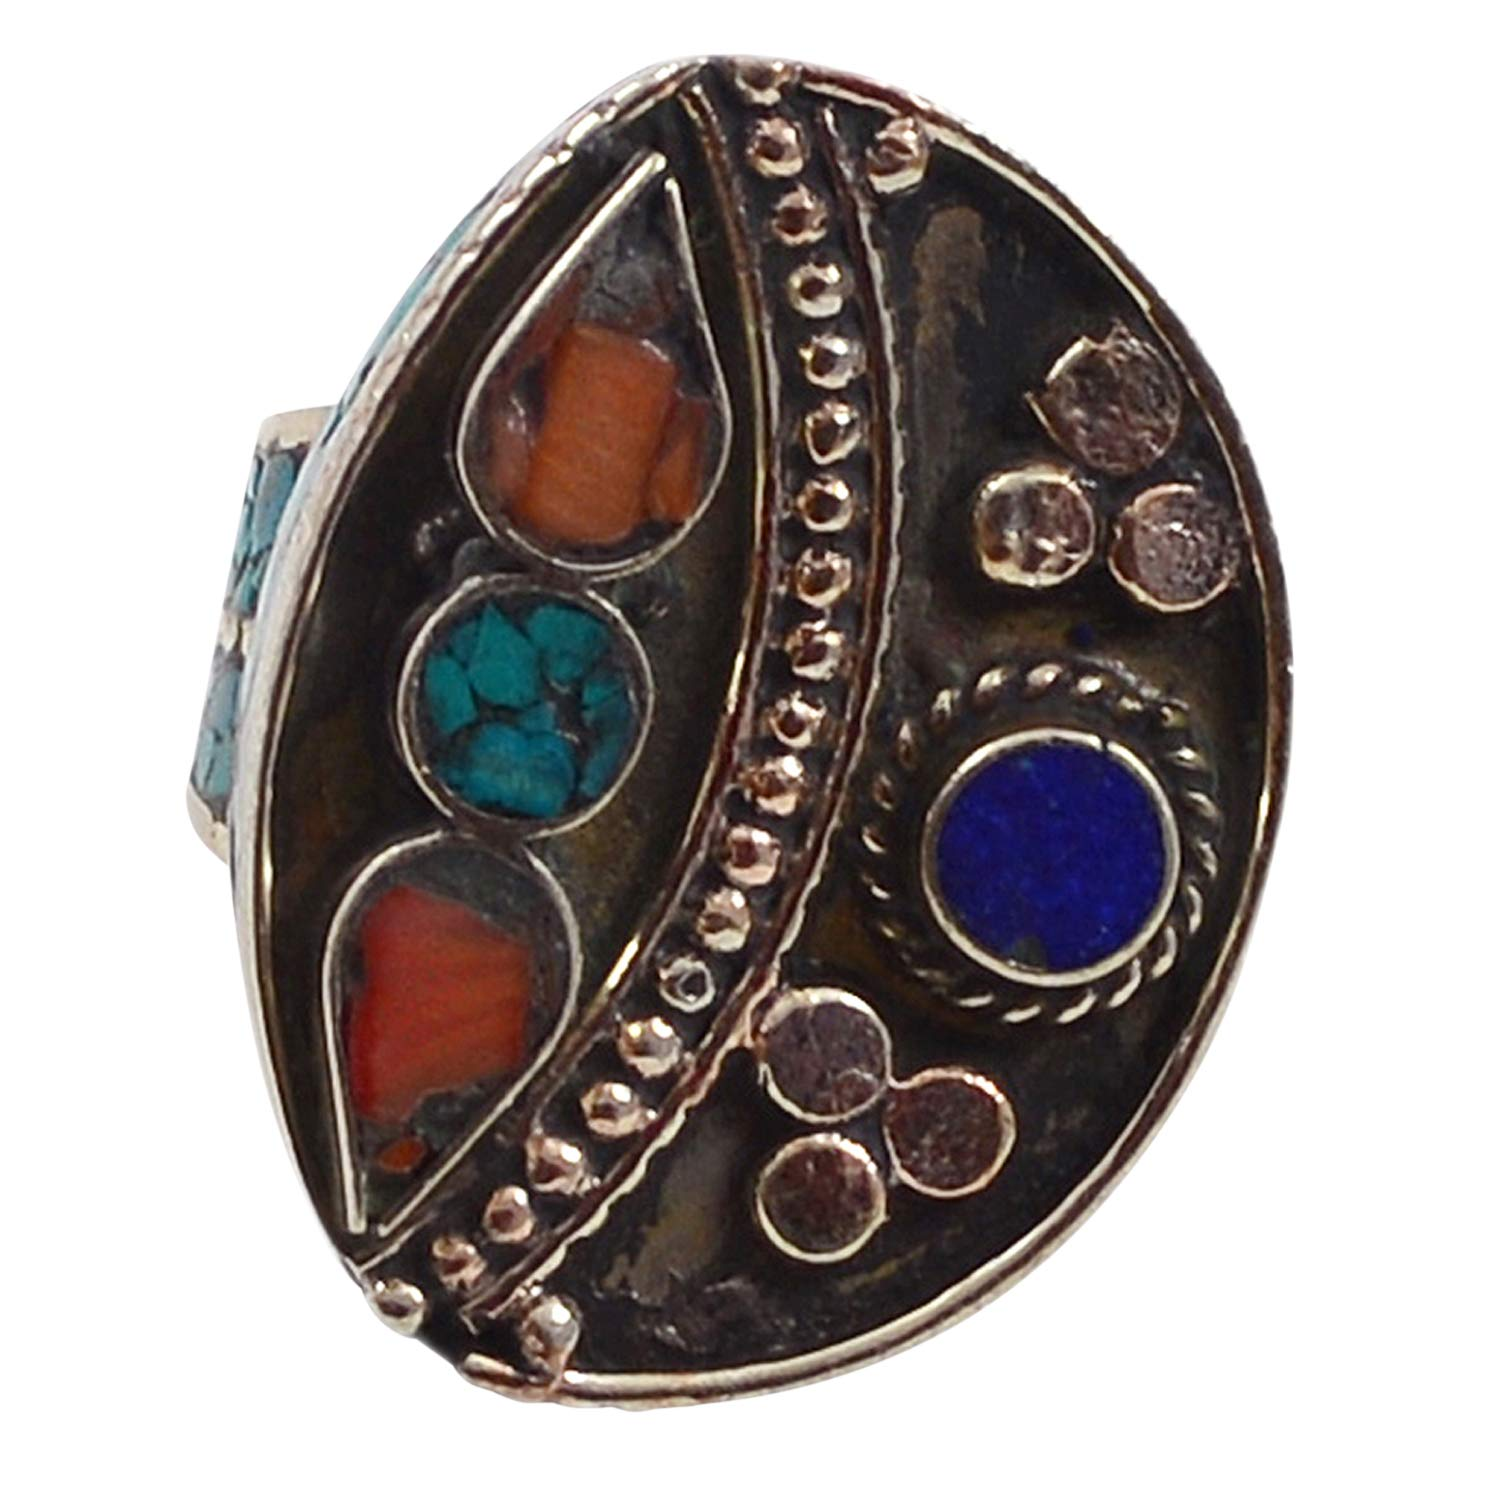 PG-117760 Turquoise /& Lapis Lazuli 925 Silver Plated Ring Sz 9 Saamarth Impex Coral